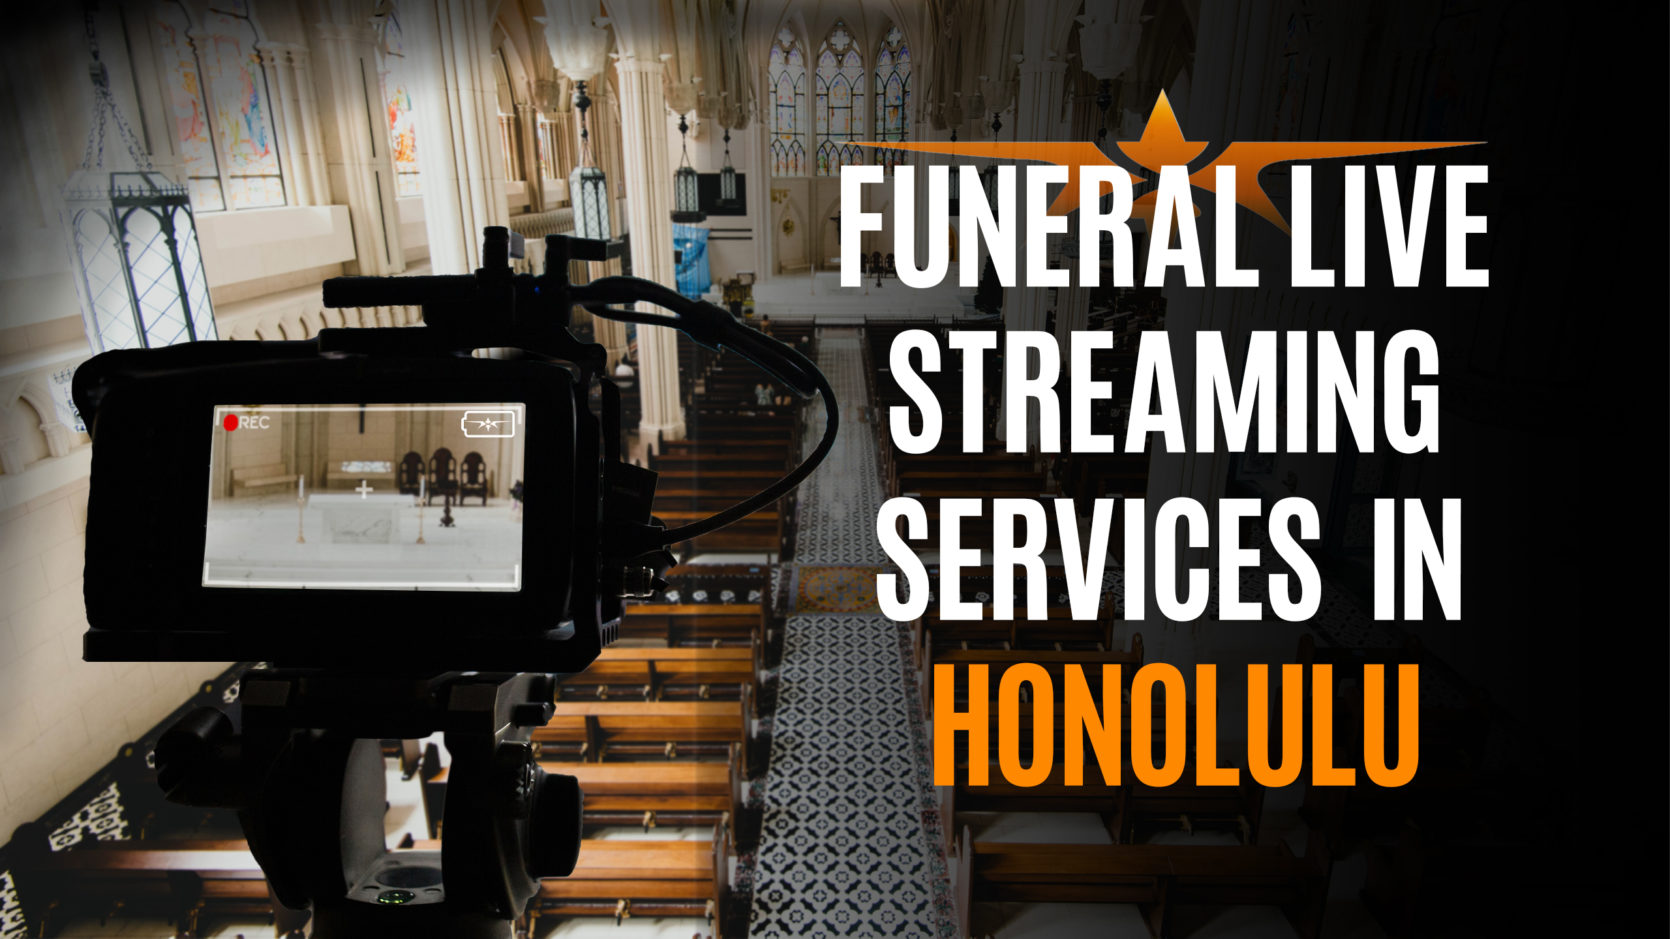 Funeral Live Streaming Services in Honolulu